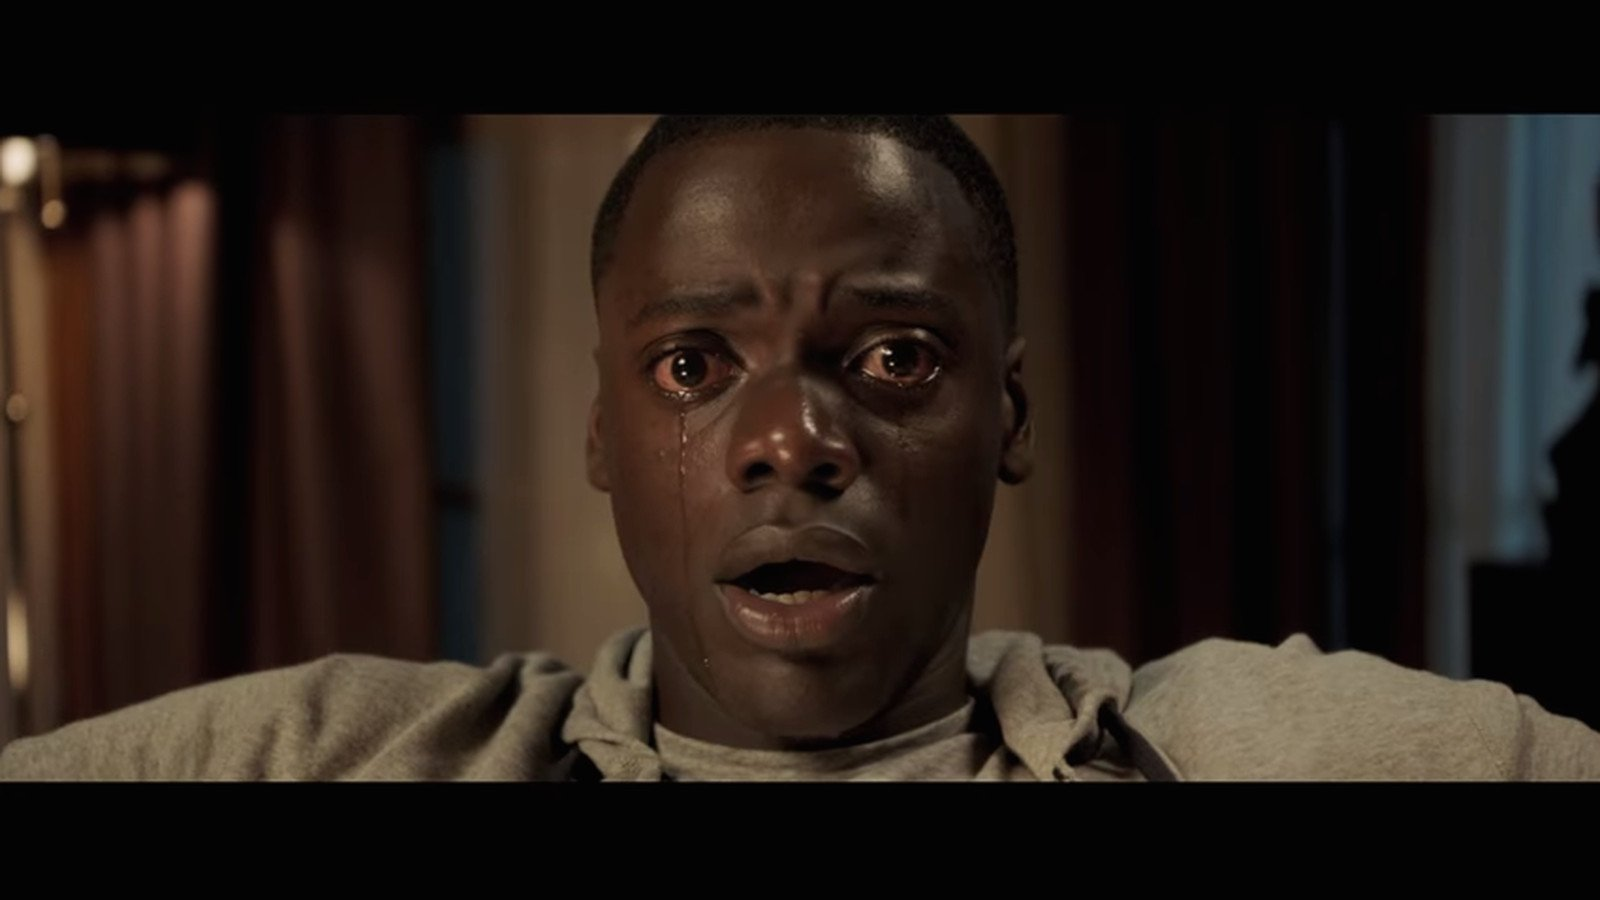 Photo culte du film Get Out avec